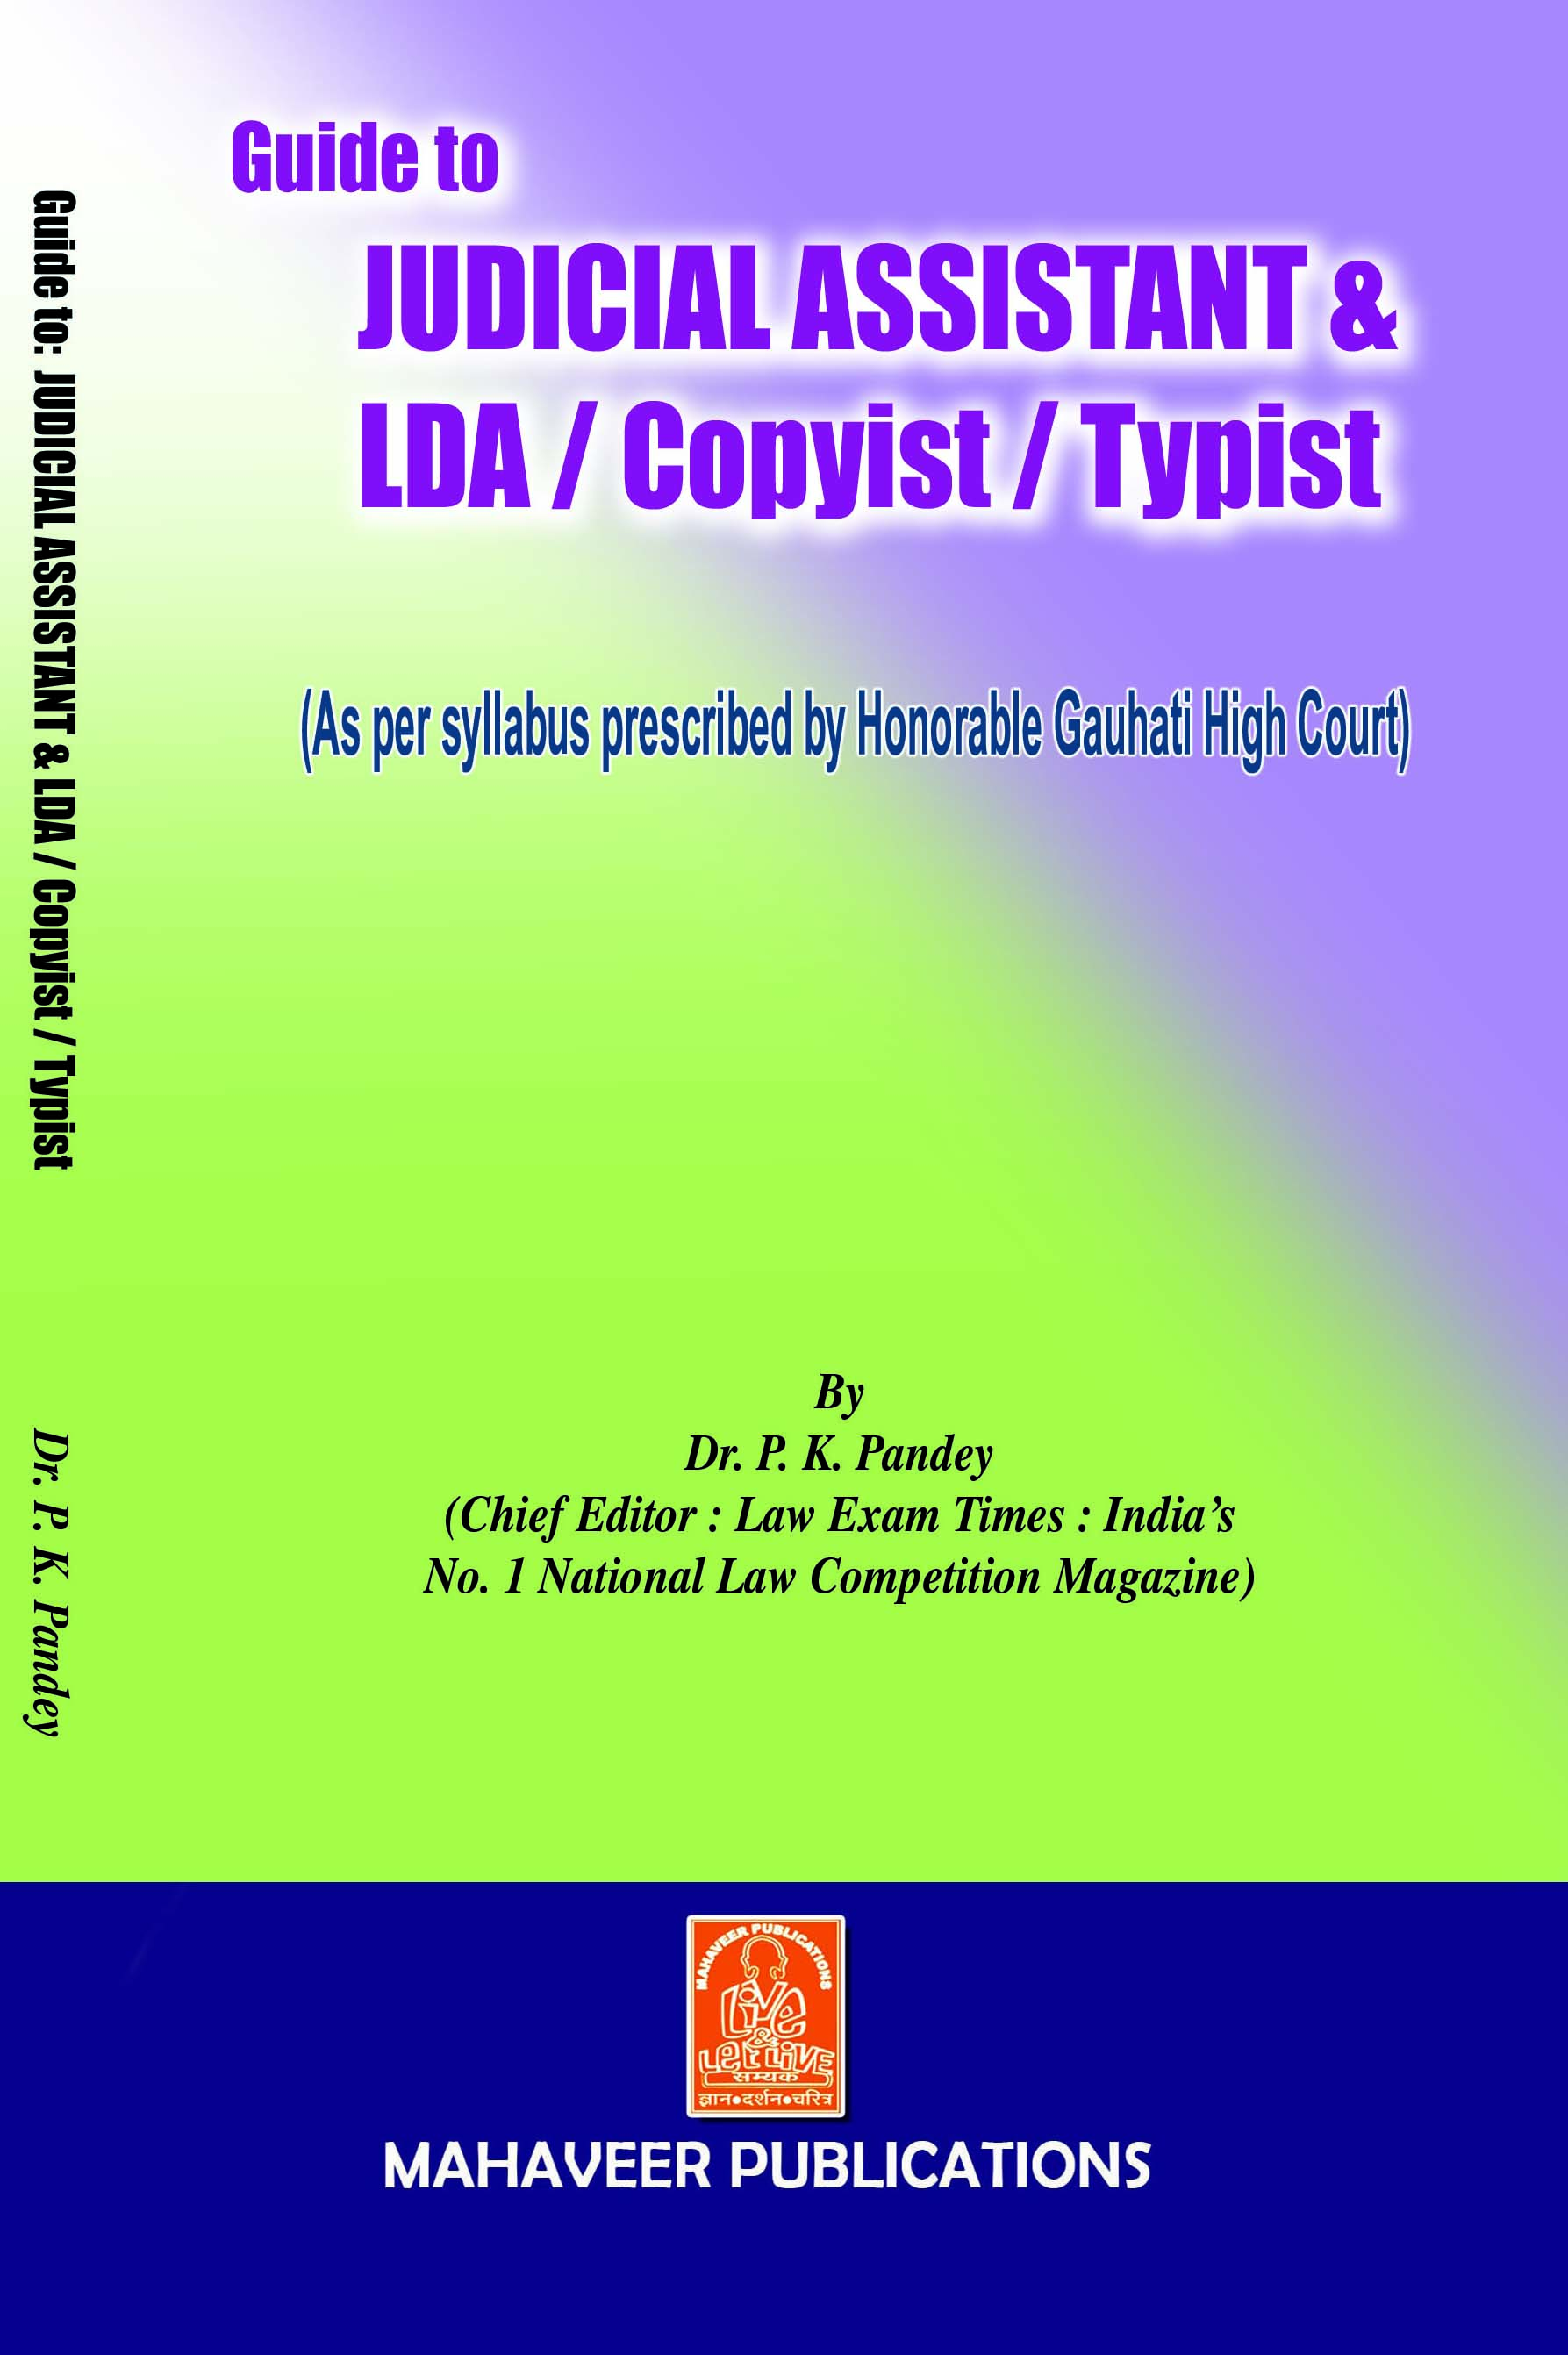 guide to judicial assistant lda copyist typist recruitment exam rh mahaveerpublications com Assistant to the Assistant Assistant to the Assistant